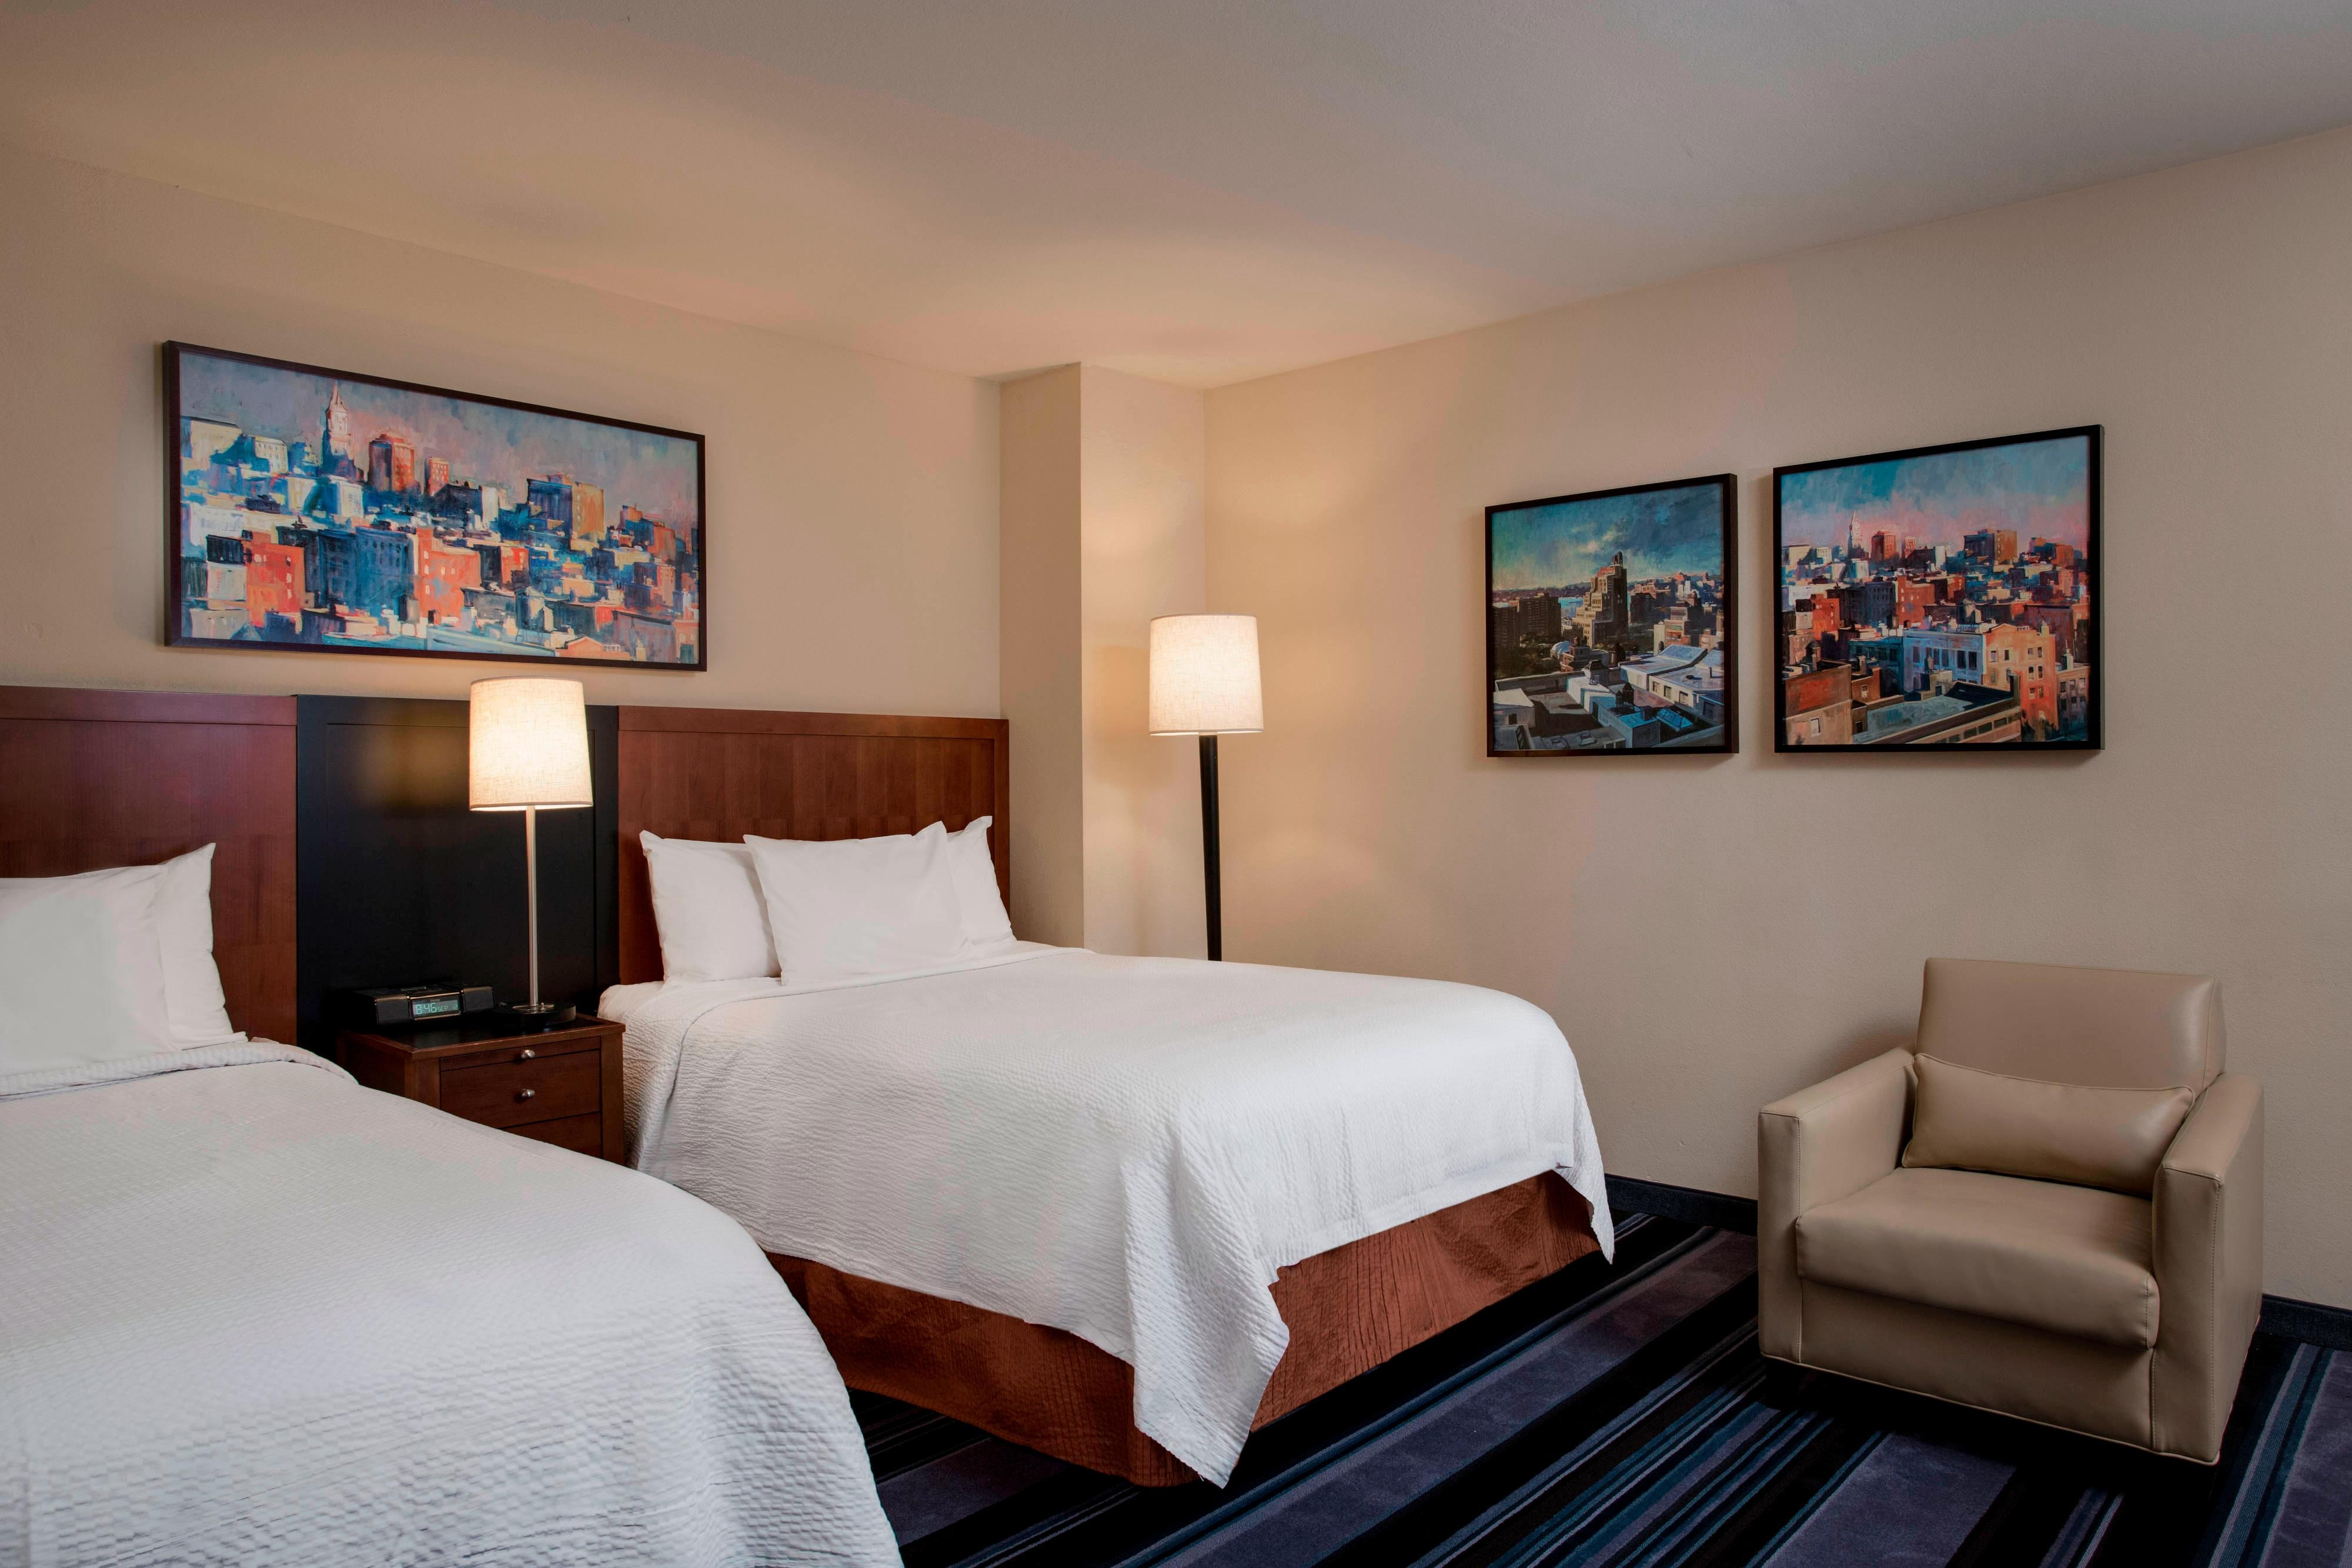 2 bedroom hotel suites nyc residence inn new york - Hotel suites new york city 2 bedrooms ...